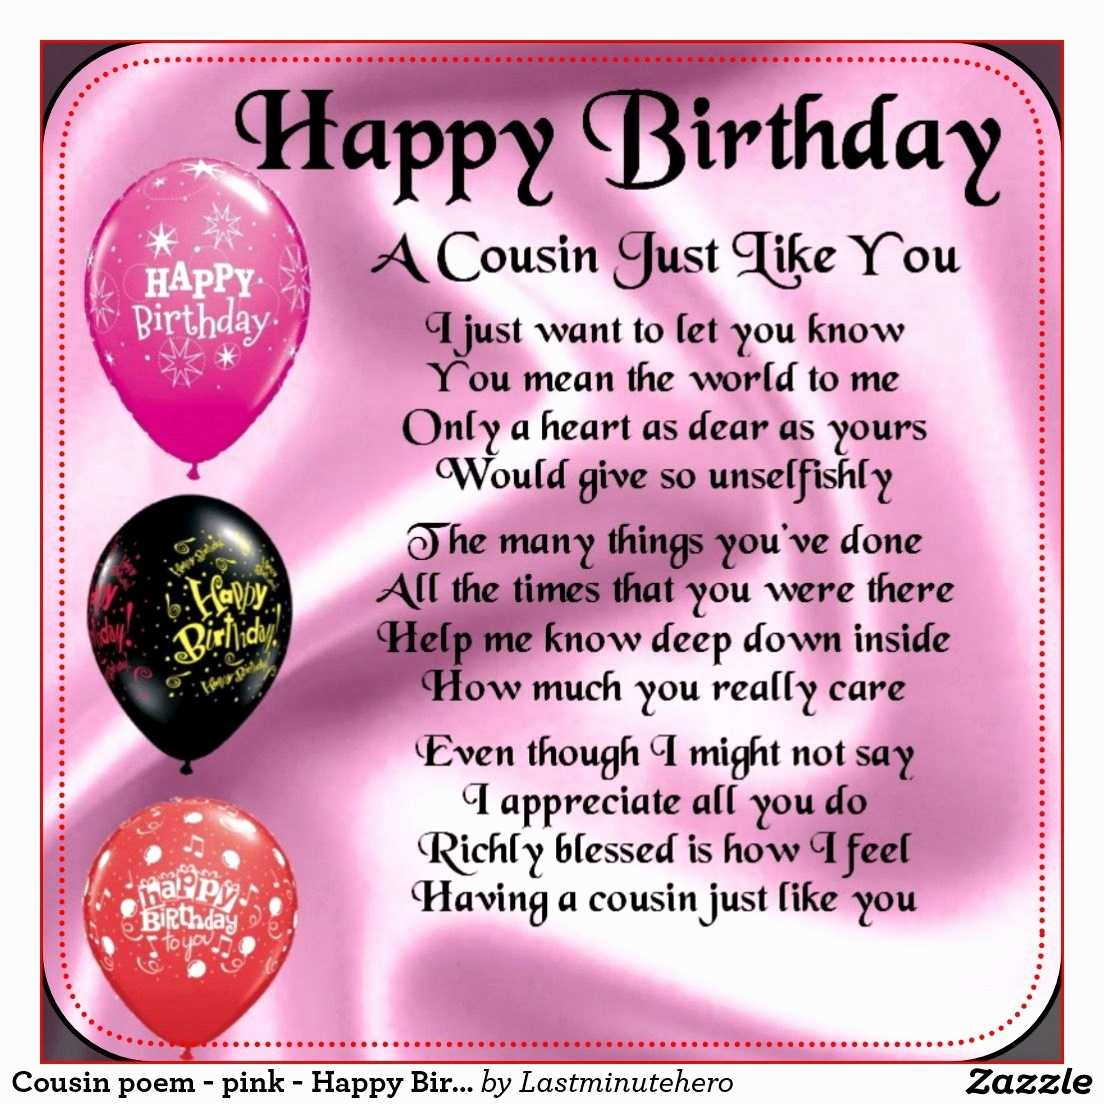 birthday poem for granddaughter free ; birthday-wish-for-daughter-luxury-happy-birthday-poems-for-my-cousin-12-of-birthday-wish-for-daughter